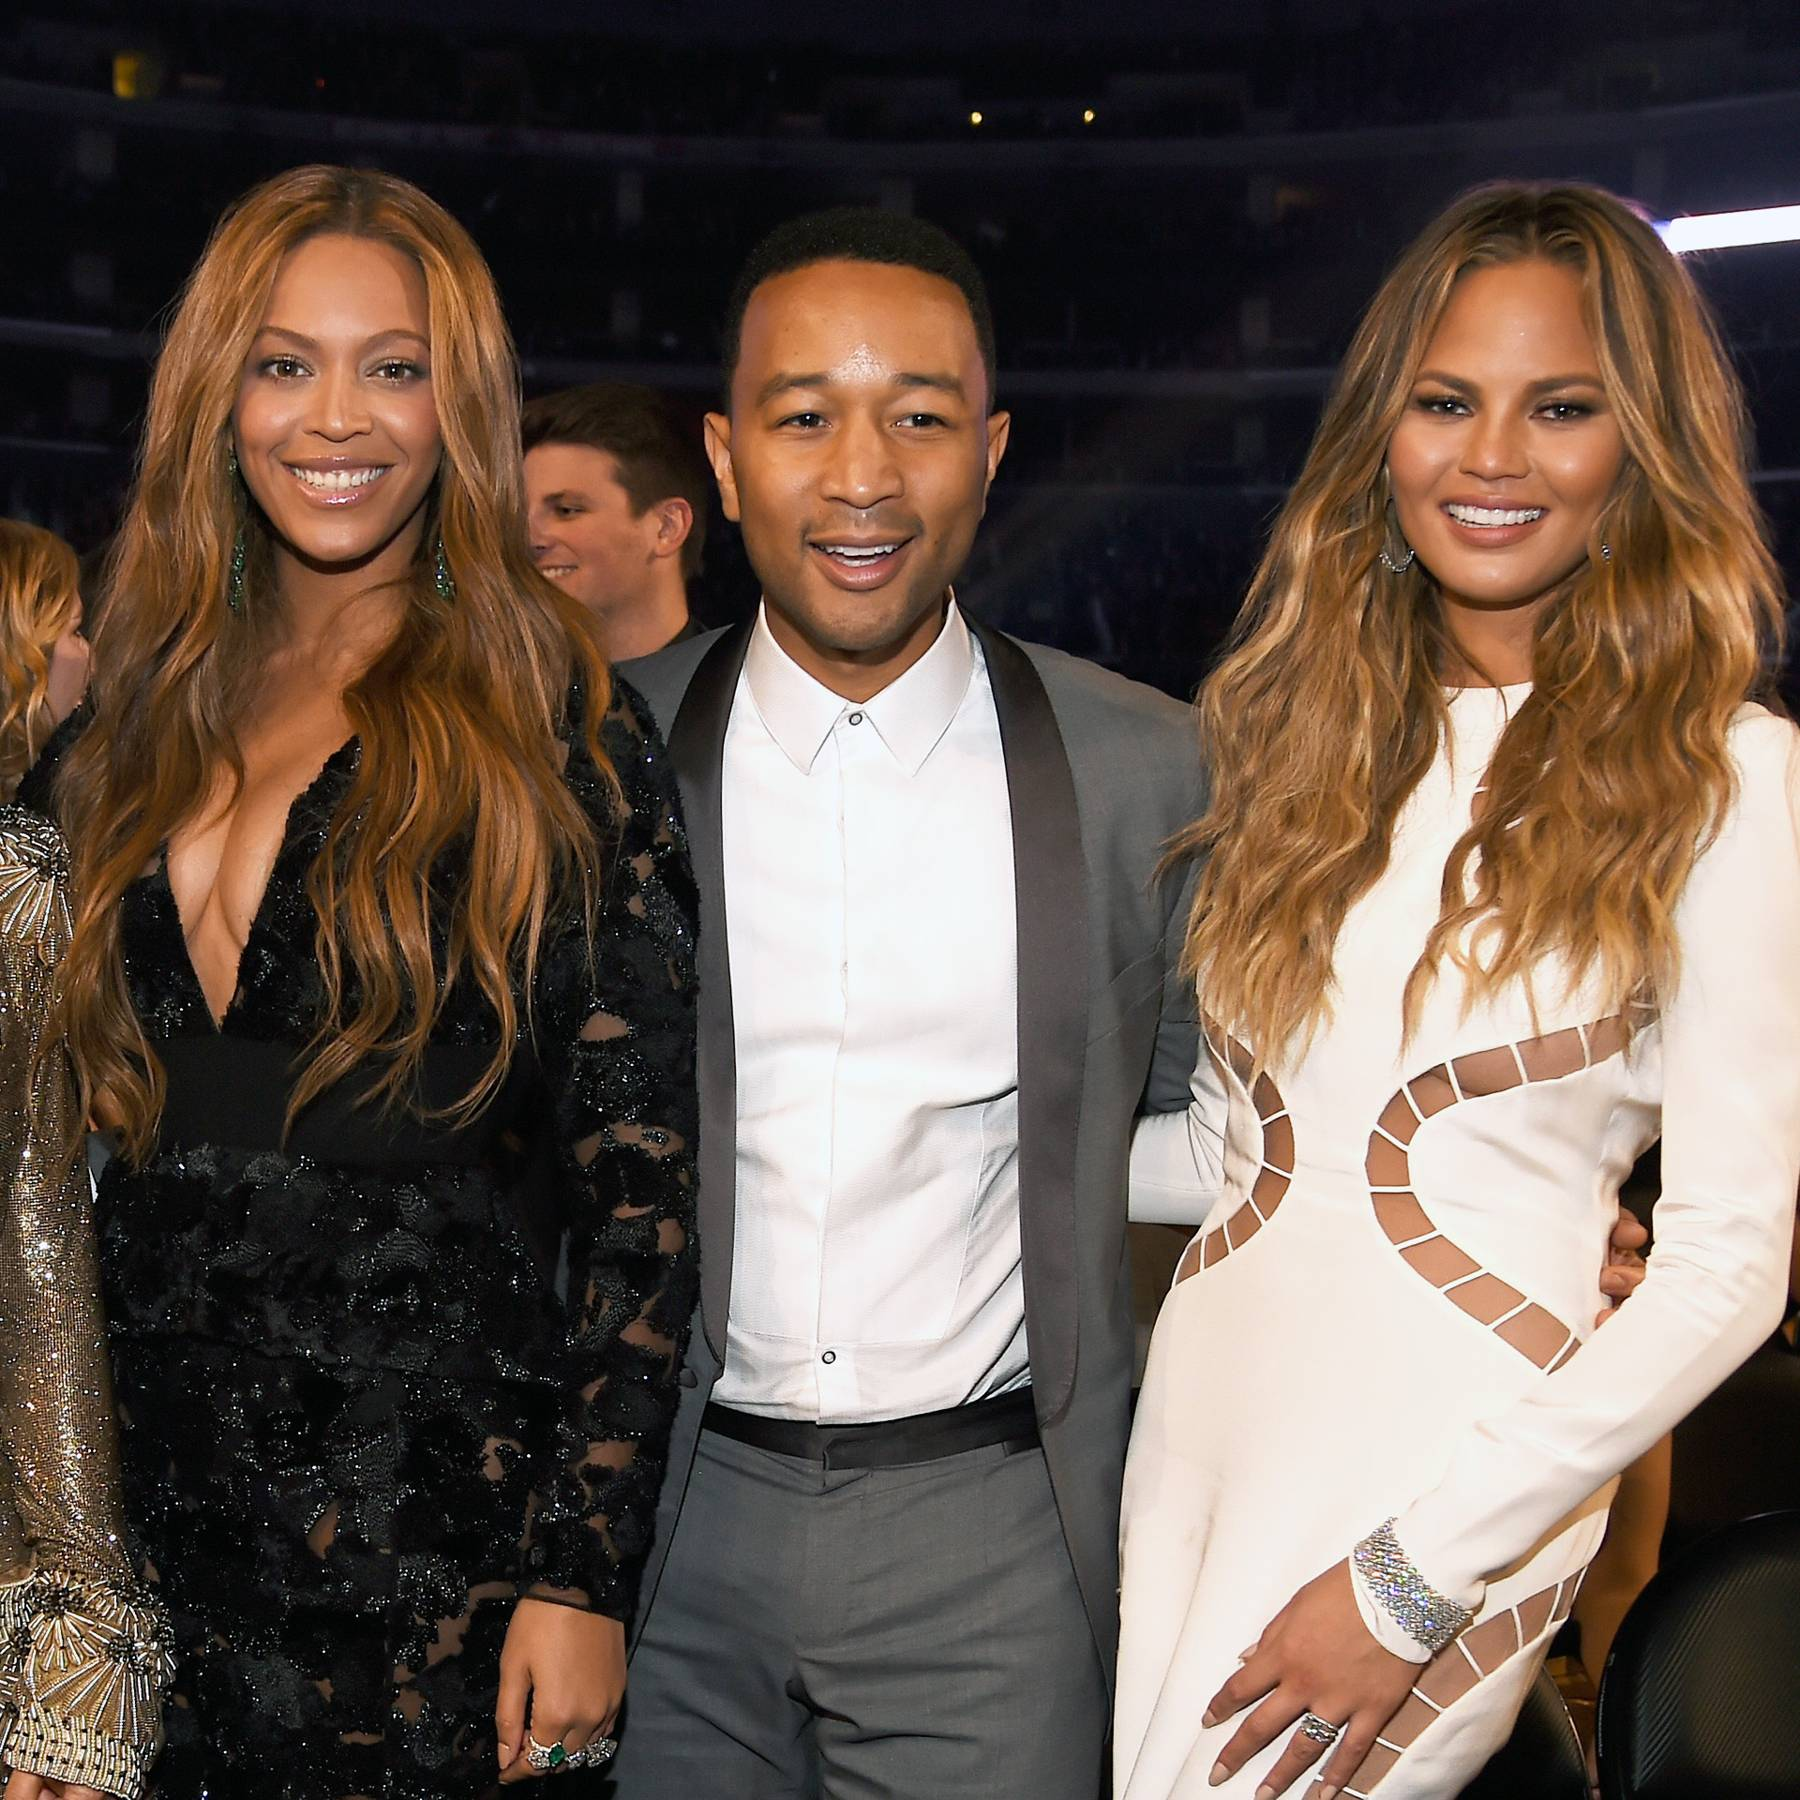 d3f31b7099f6a Chrissy Teigen s Reaction to Meeting Beyoncé At The GRAMMYs